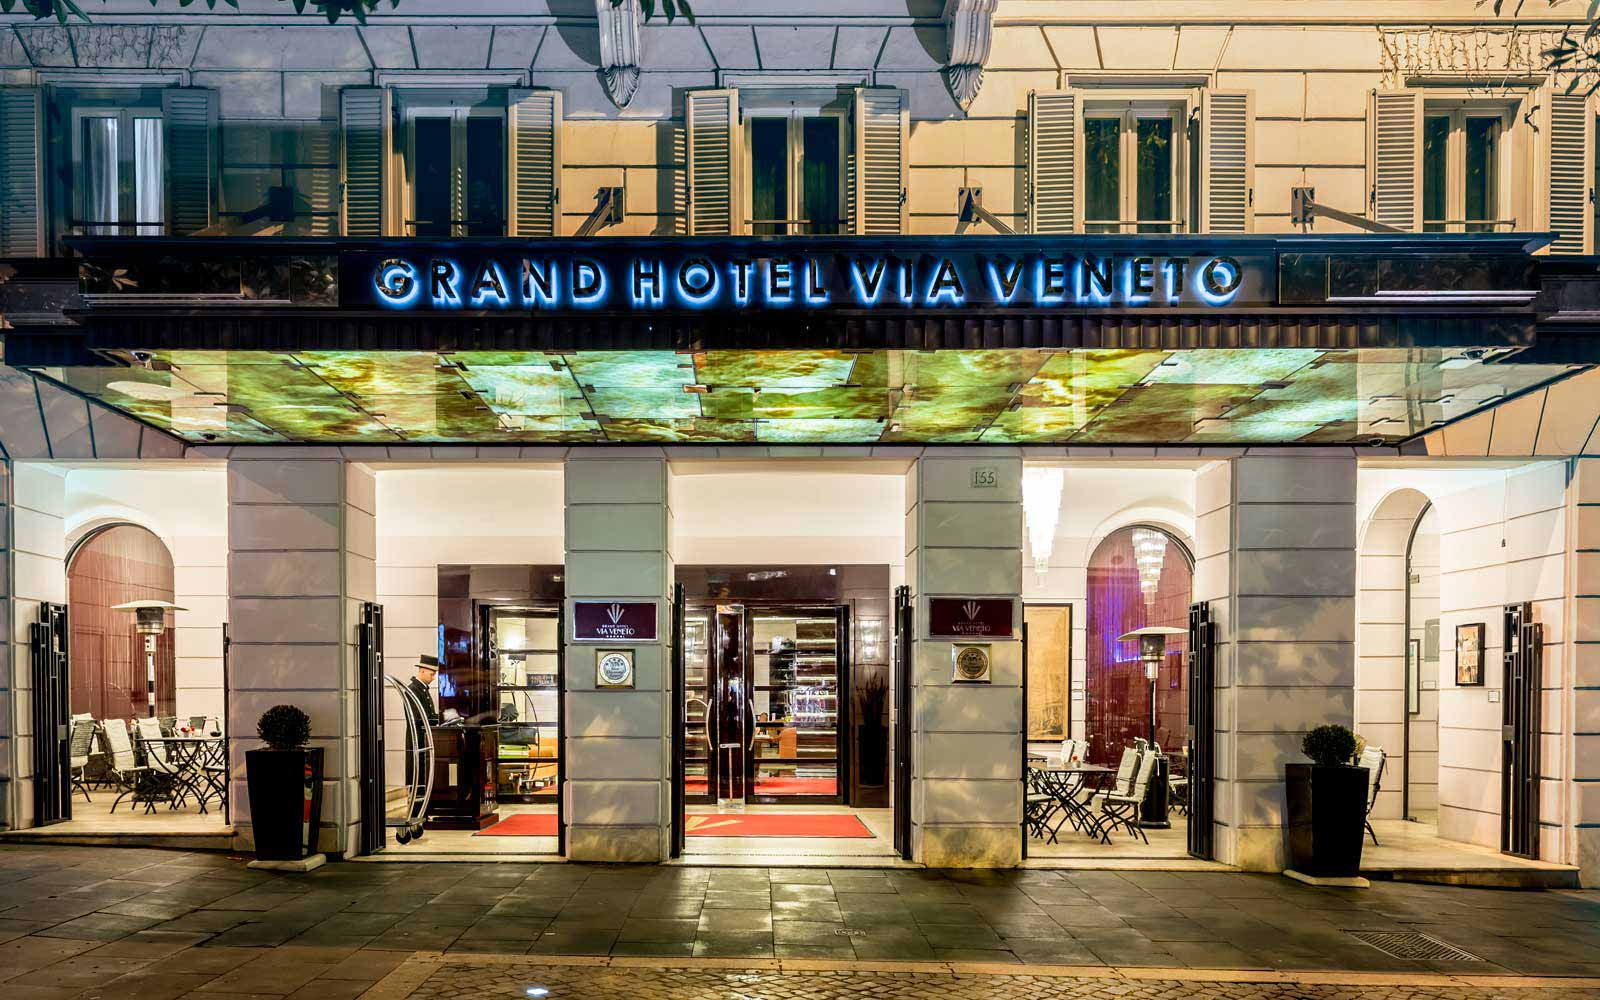 Entrance at the Grand Hotel Via Veneto